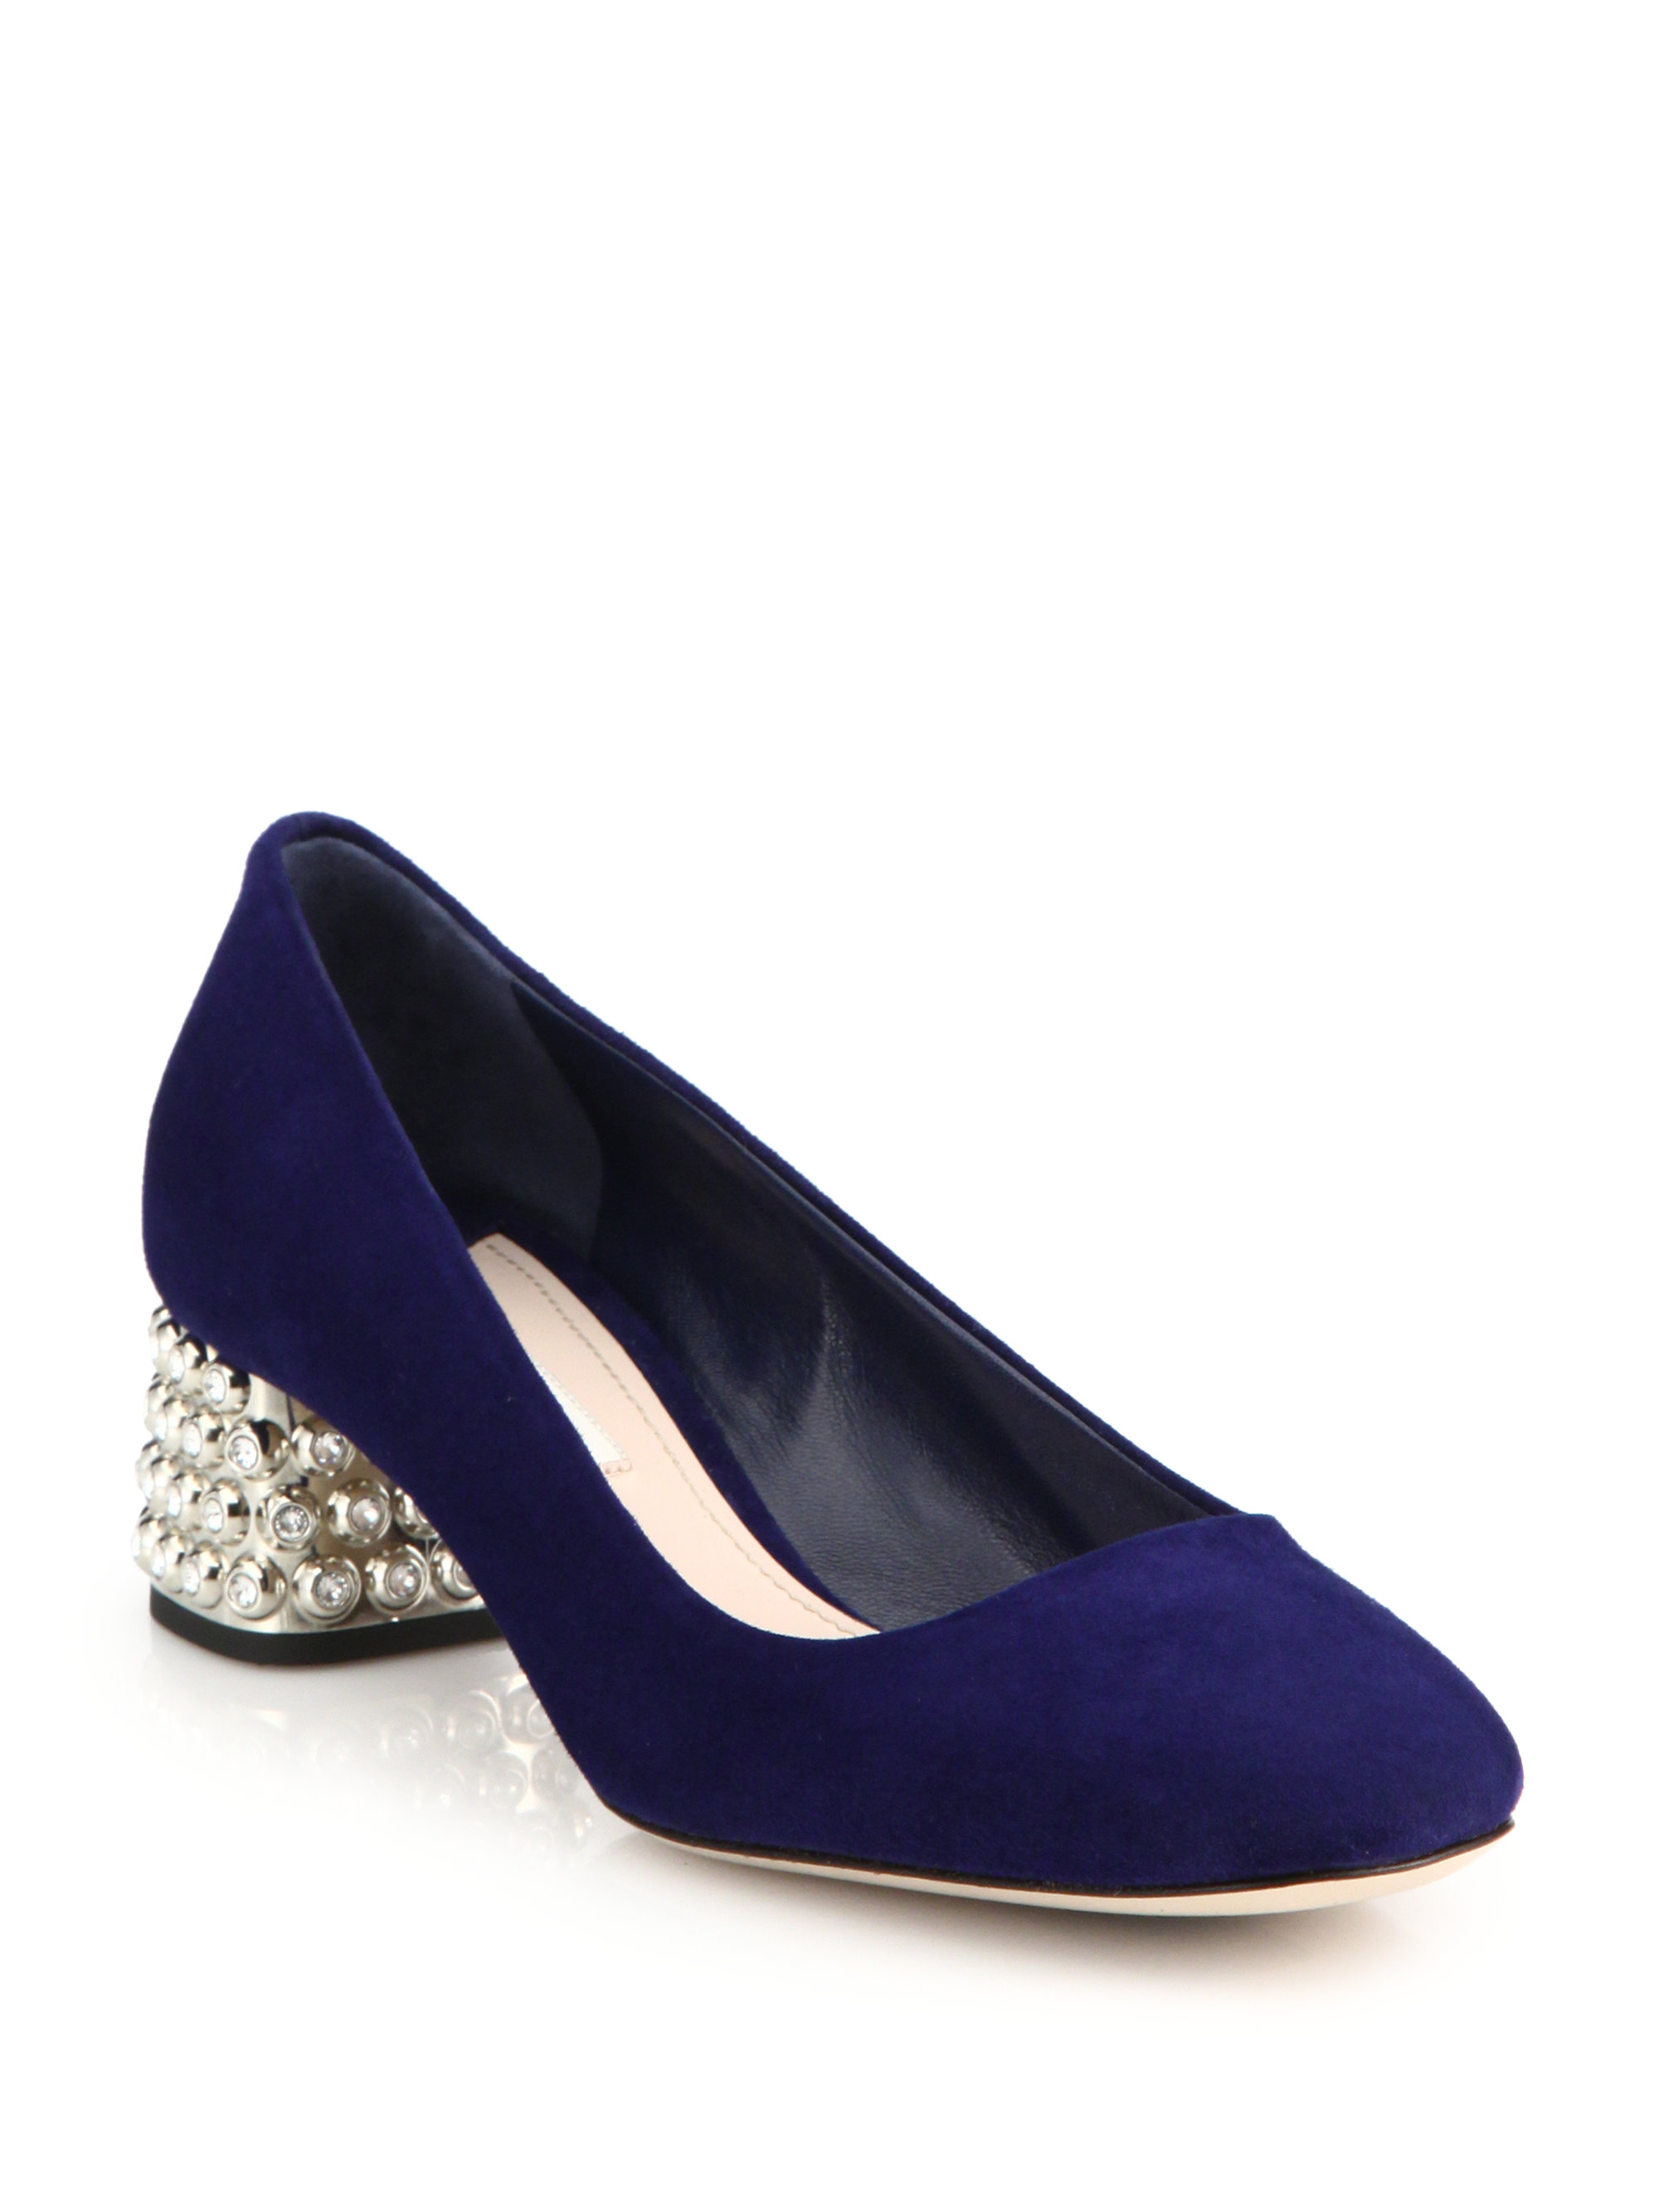 Lyst Miu Miu Crystal Amp Metal Heeled Suede Pumps In Blue